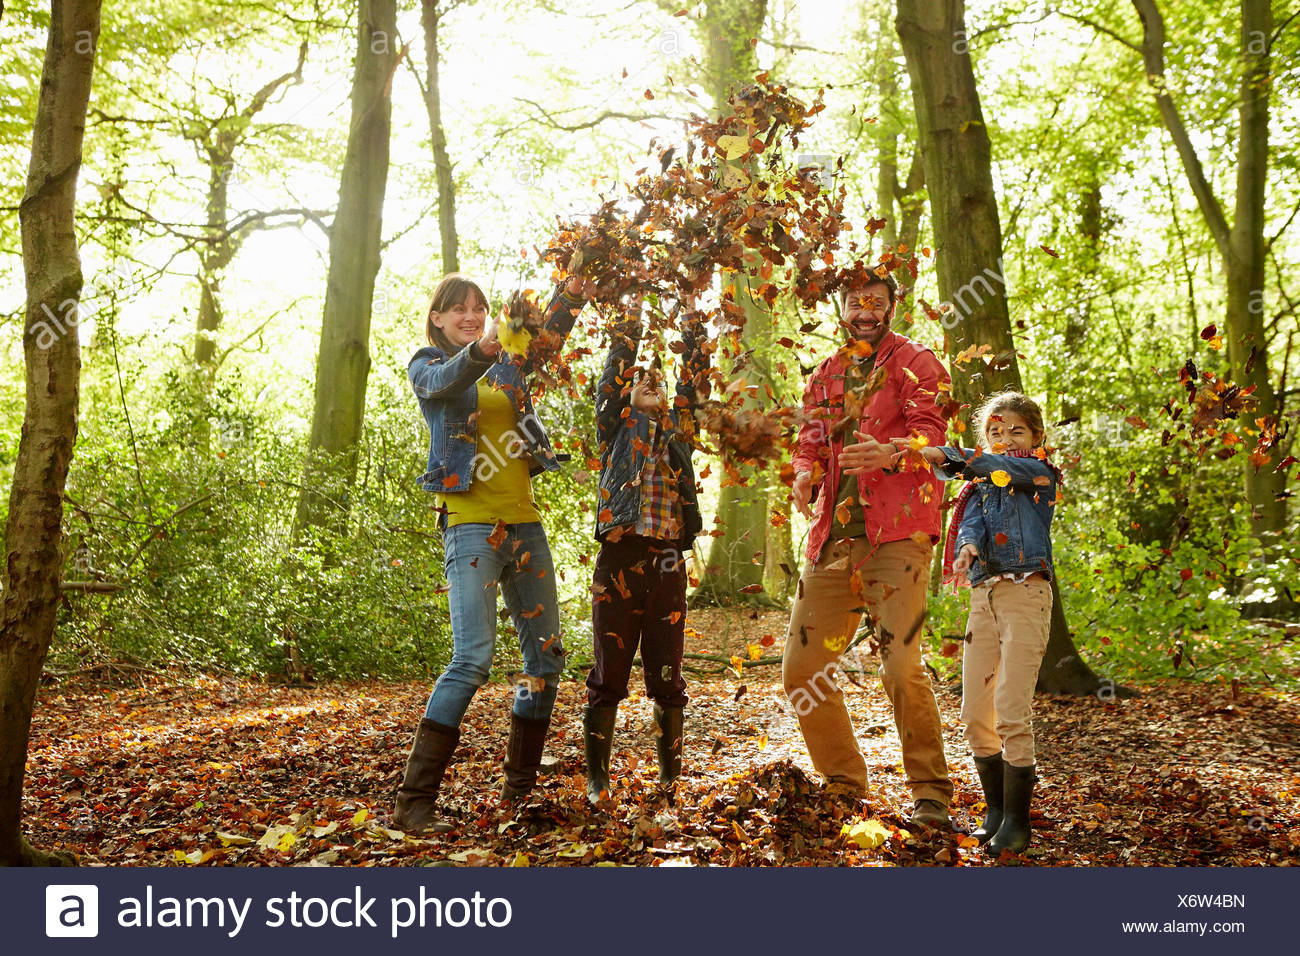 A family throwing dried leaves into the air in the woods in autumn. - Stock Image